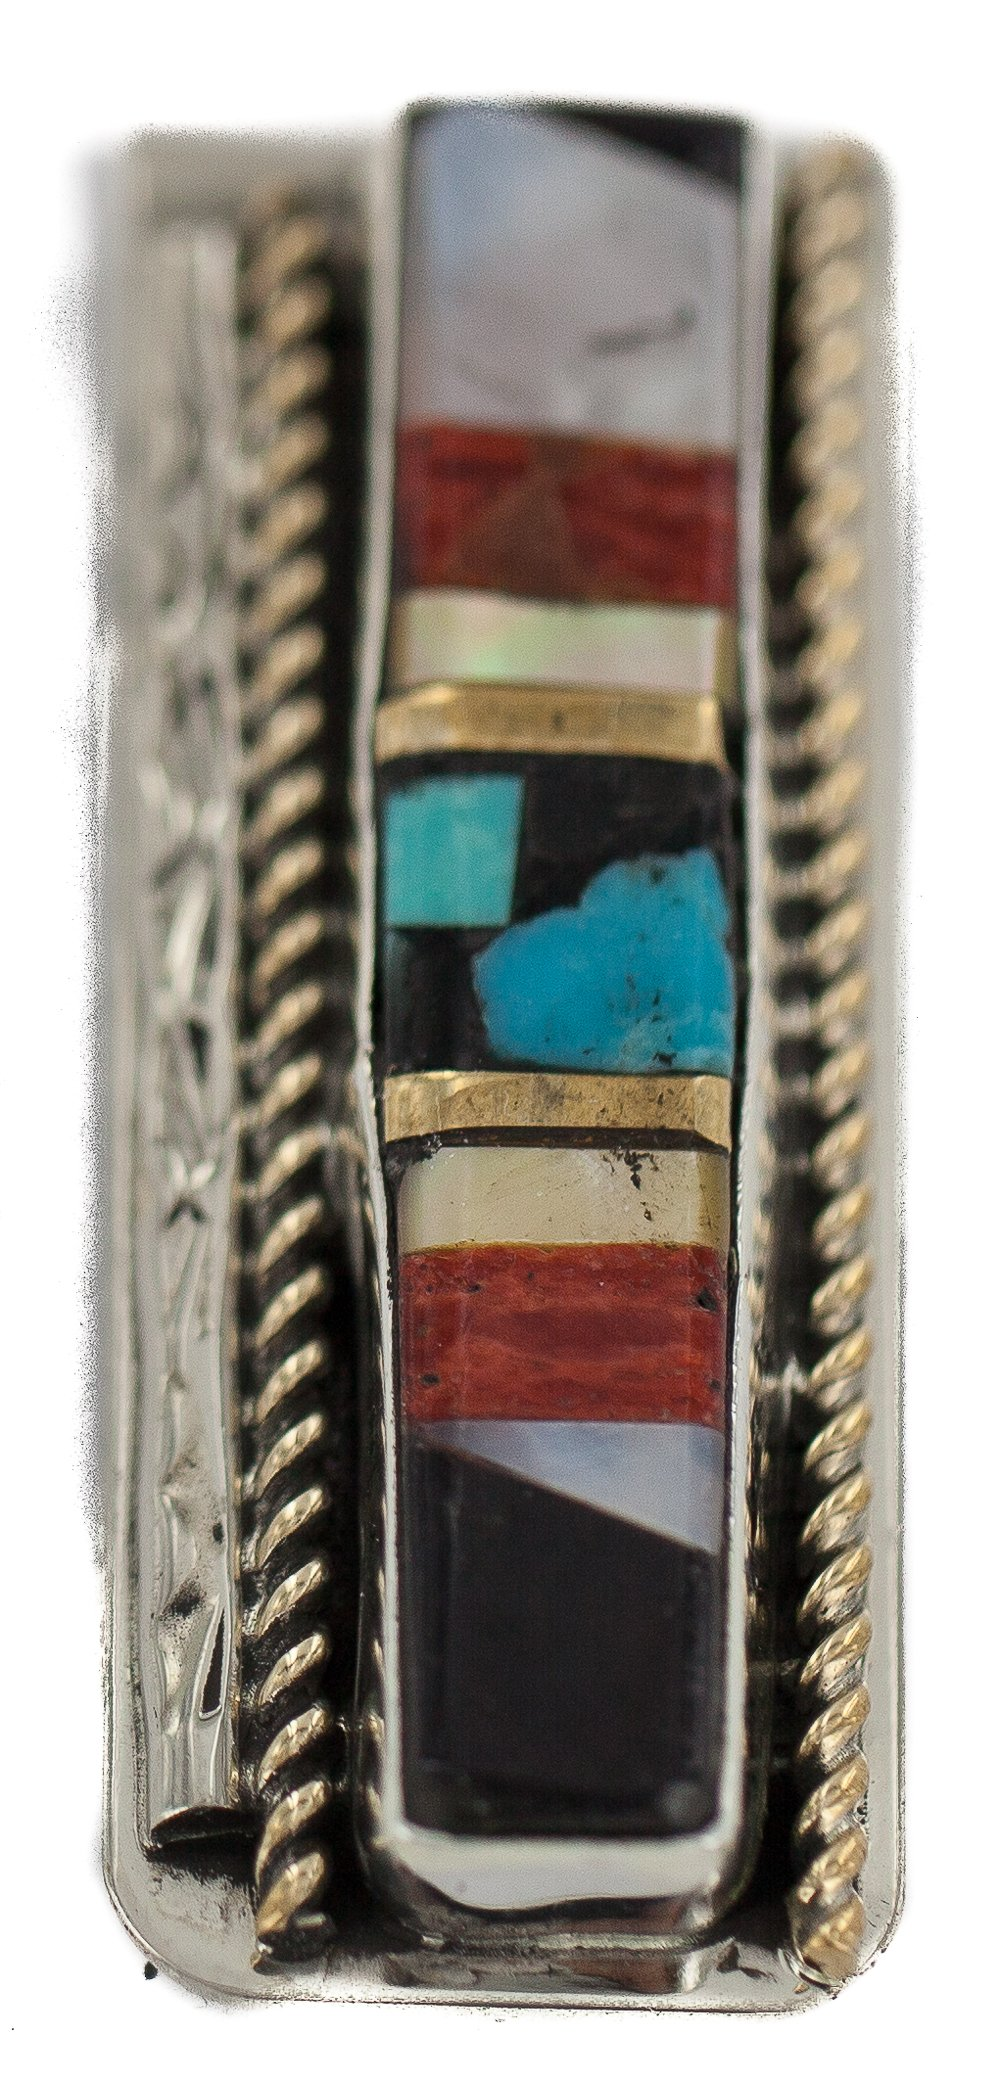 $190 Retail Tag Navajo Handmade Authentic Made by Robert Little Silver Inlaid Natural Spiny Oyster Turquoise Mother of Pearl Black Onyx Native American Nickel Money Clip